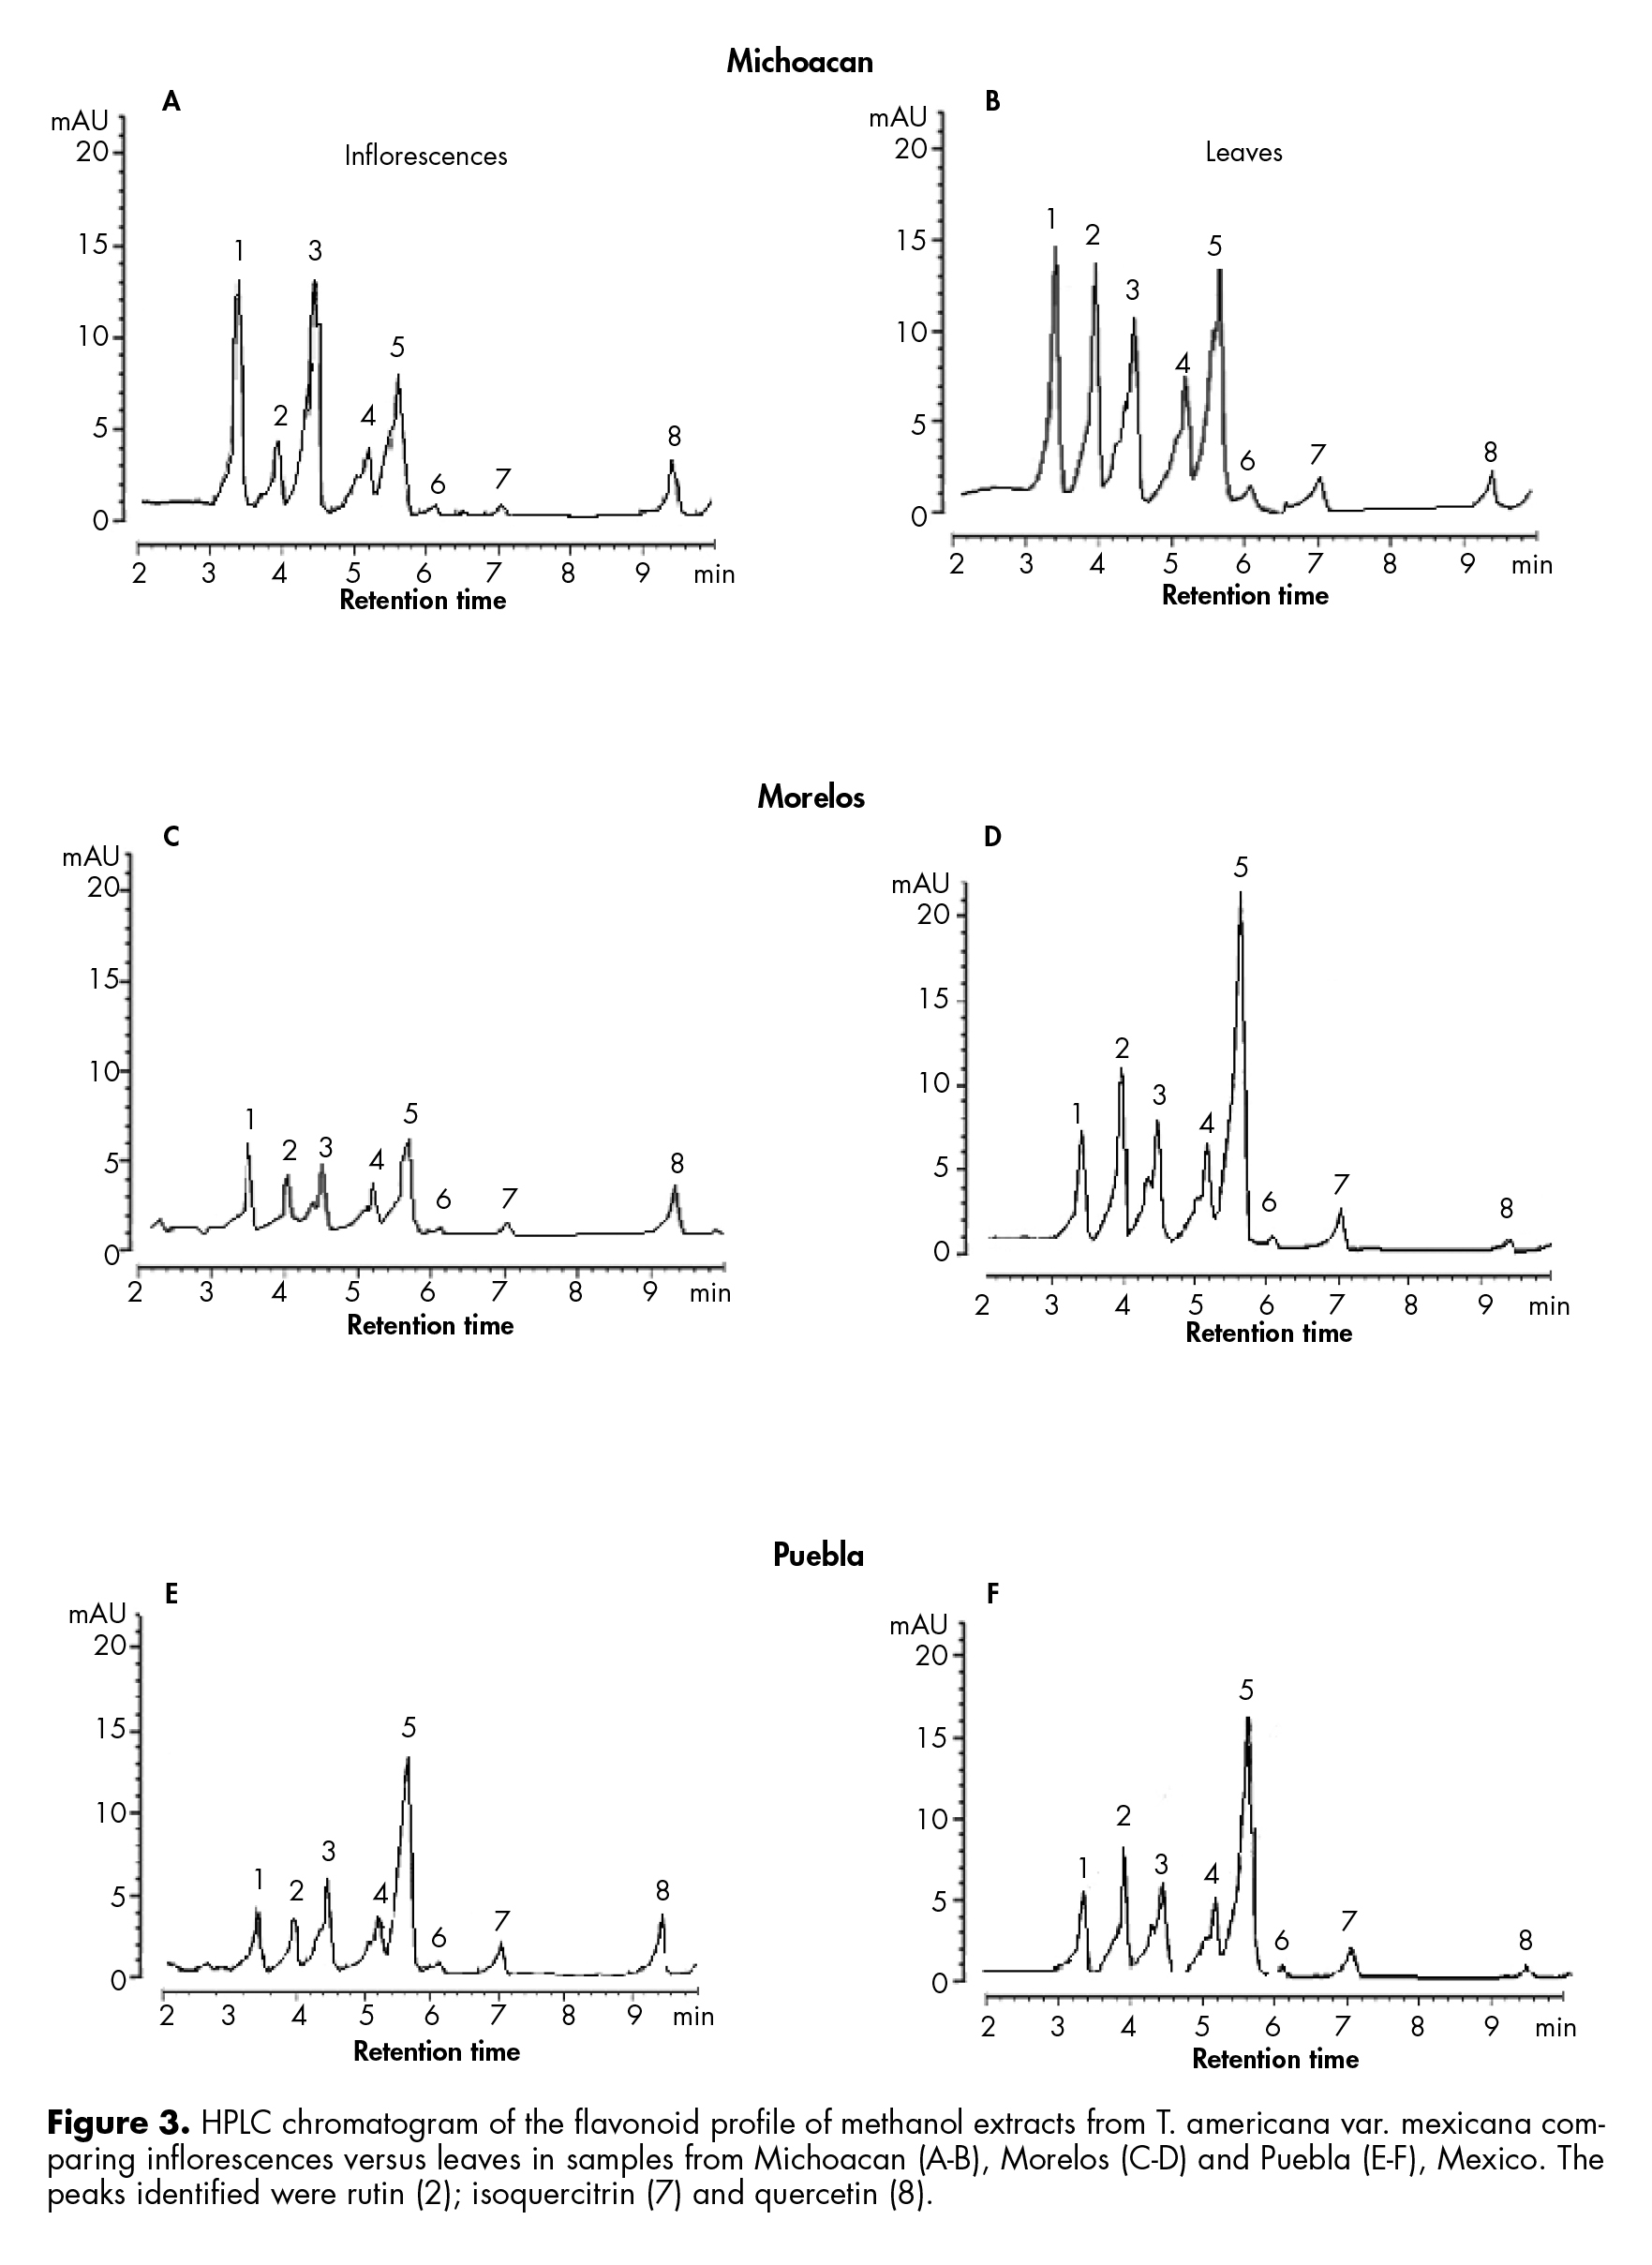 HPLC chromatogram of the flavonoid profile of methanol extracts from T. americana var. mexicana comparing inflorescences versus leaves.